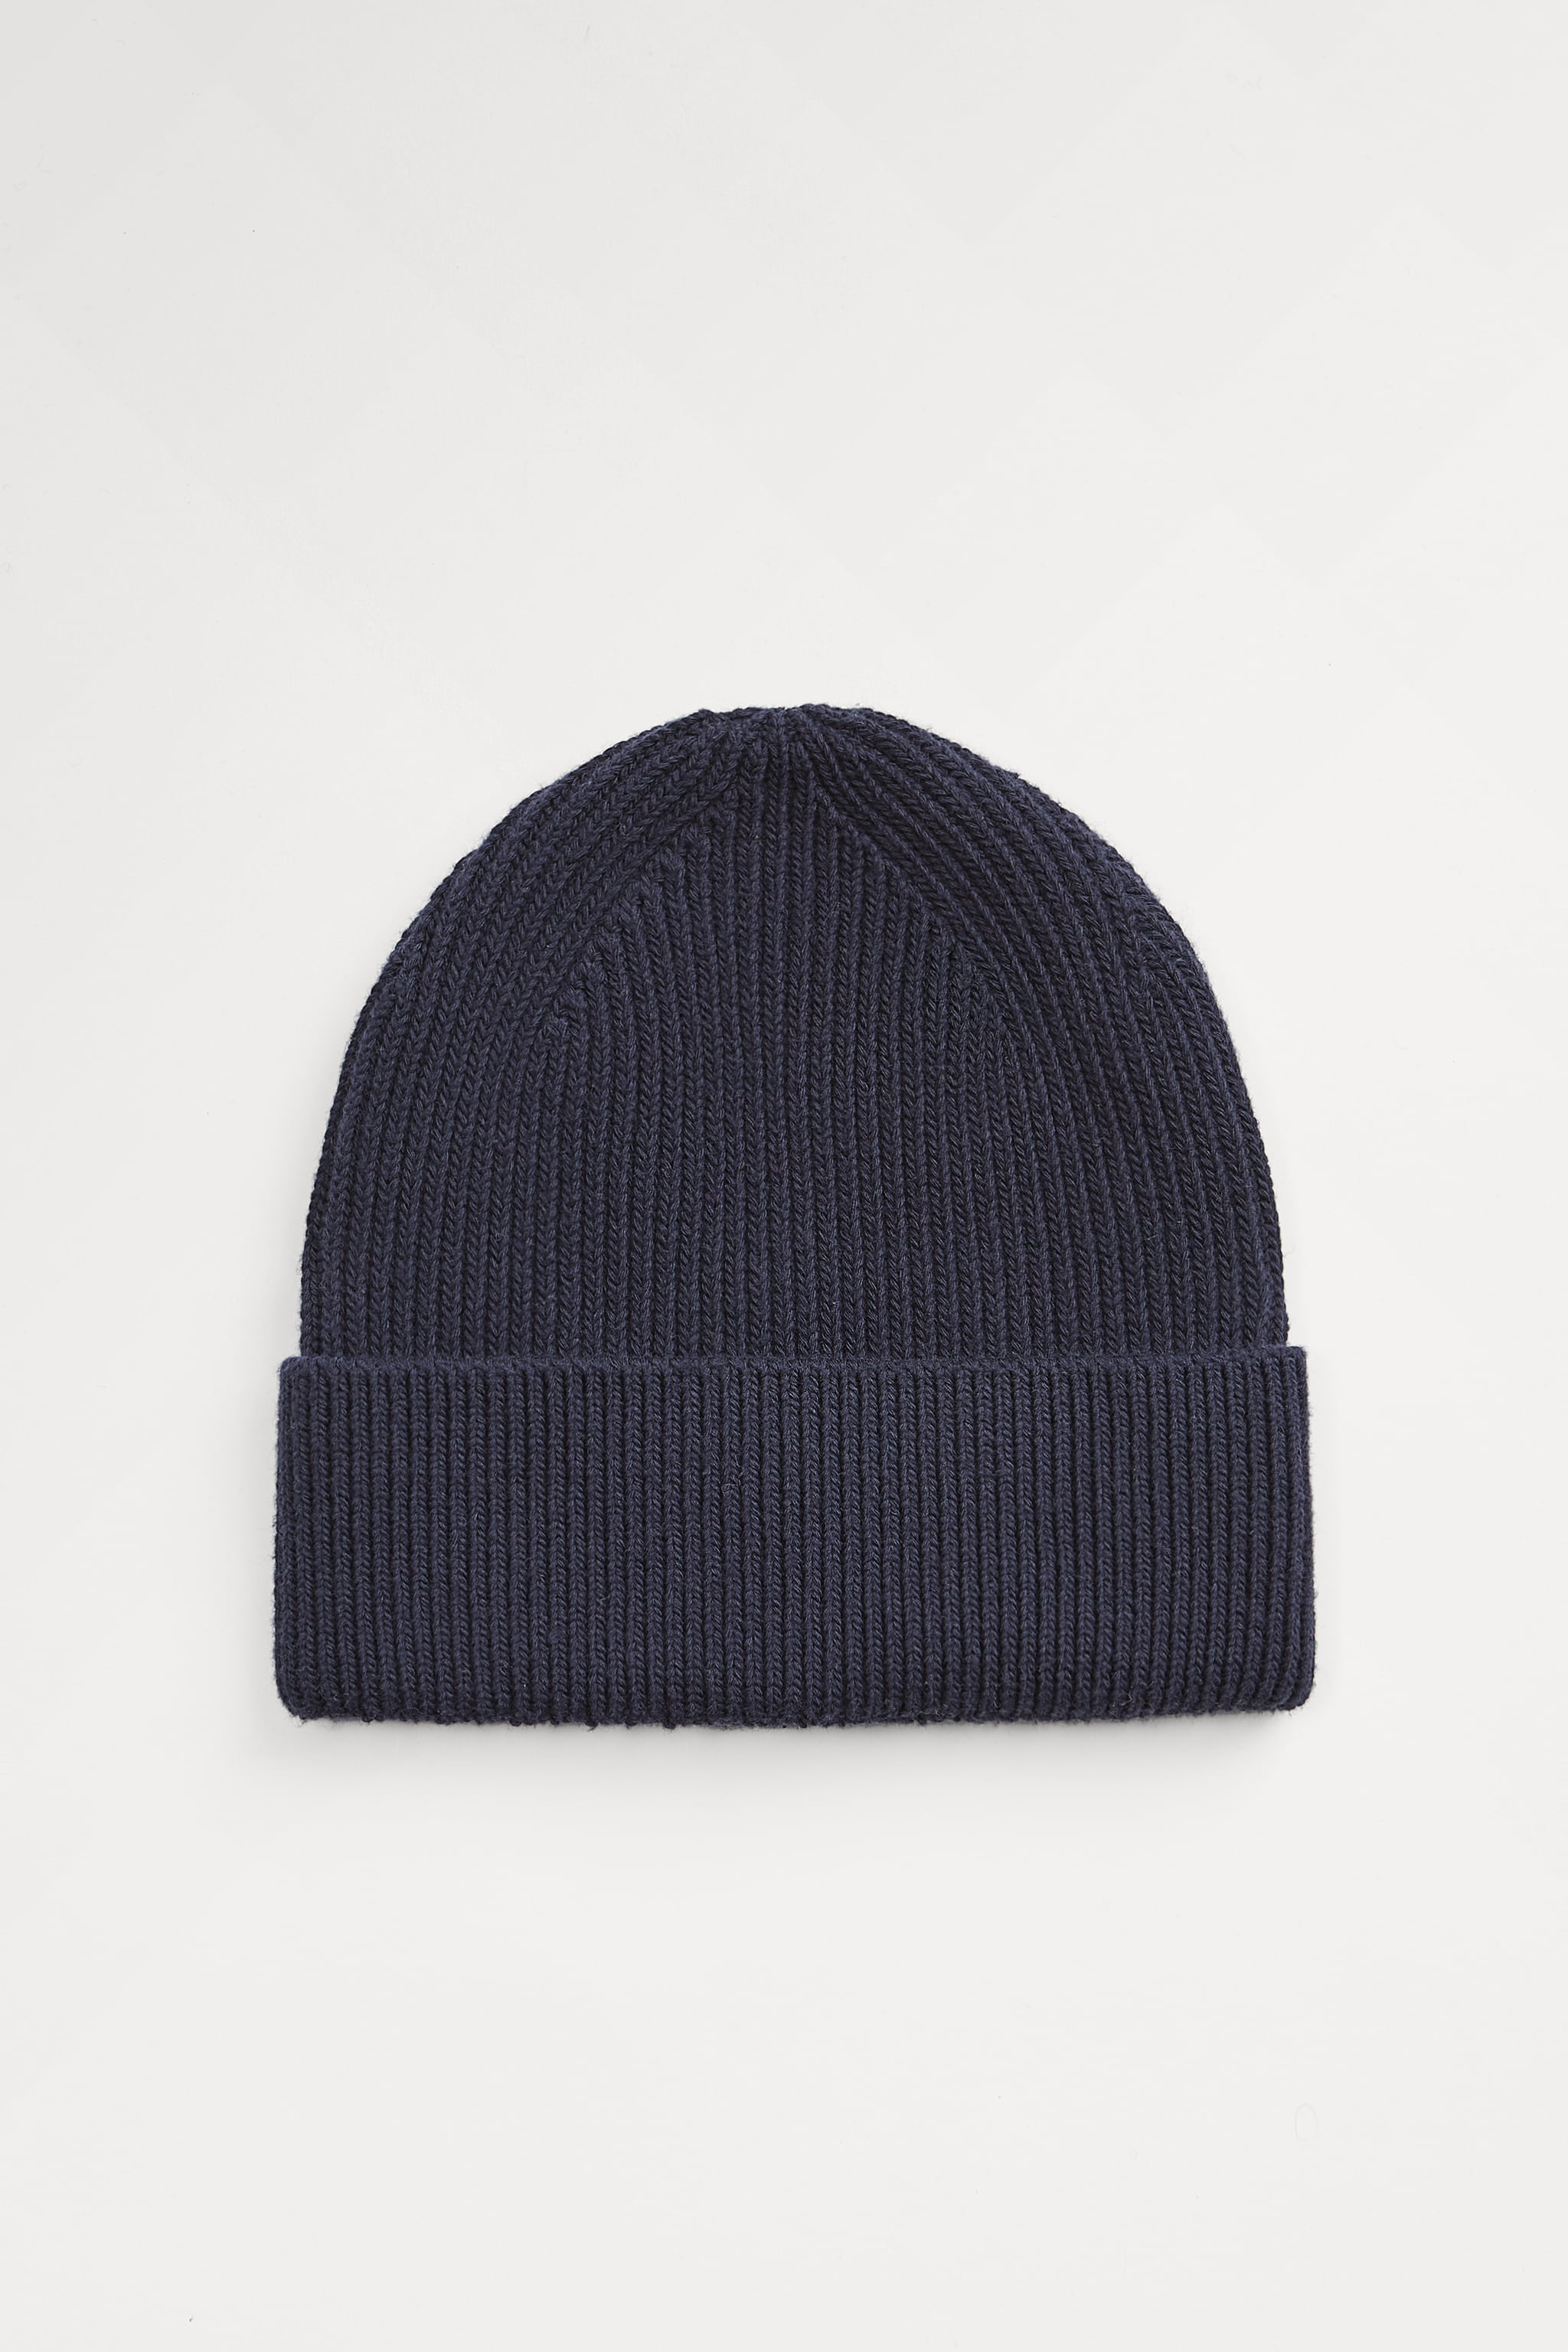 Zara RIBBED COTTON HAT